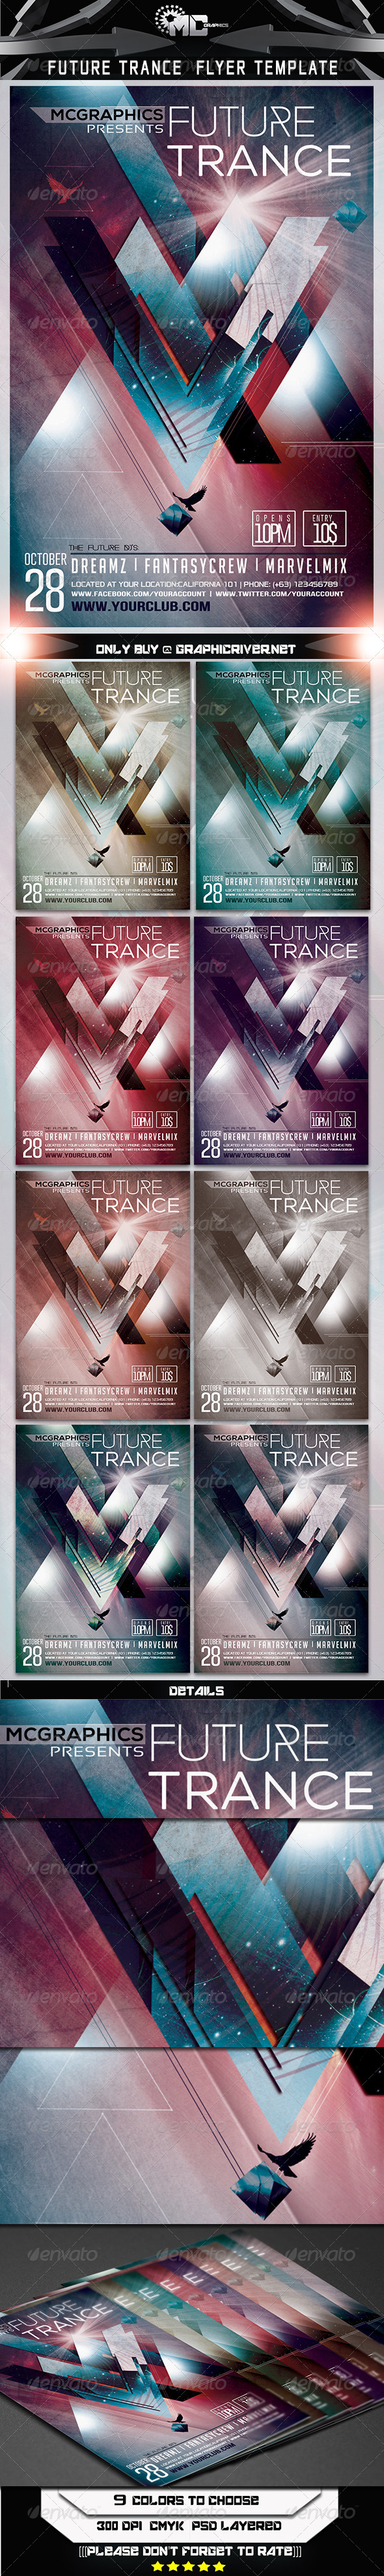 GraphicRiver Future Trance Flyer Template 7186755